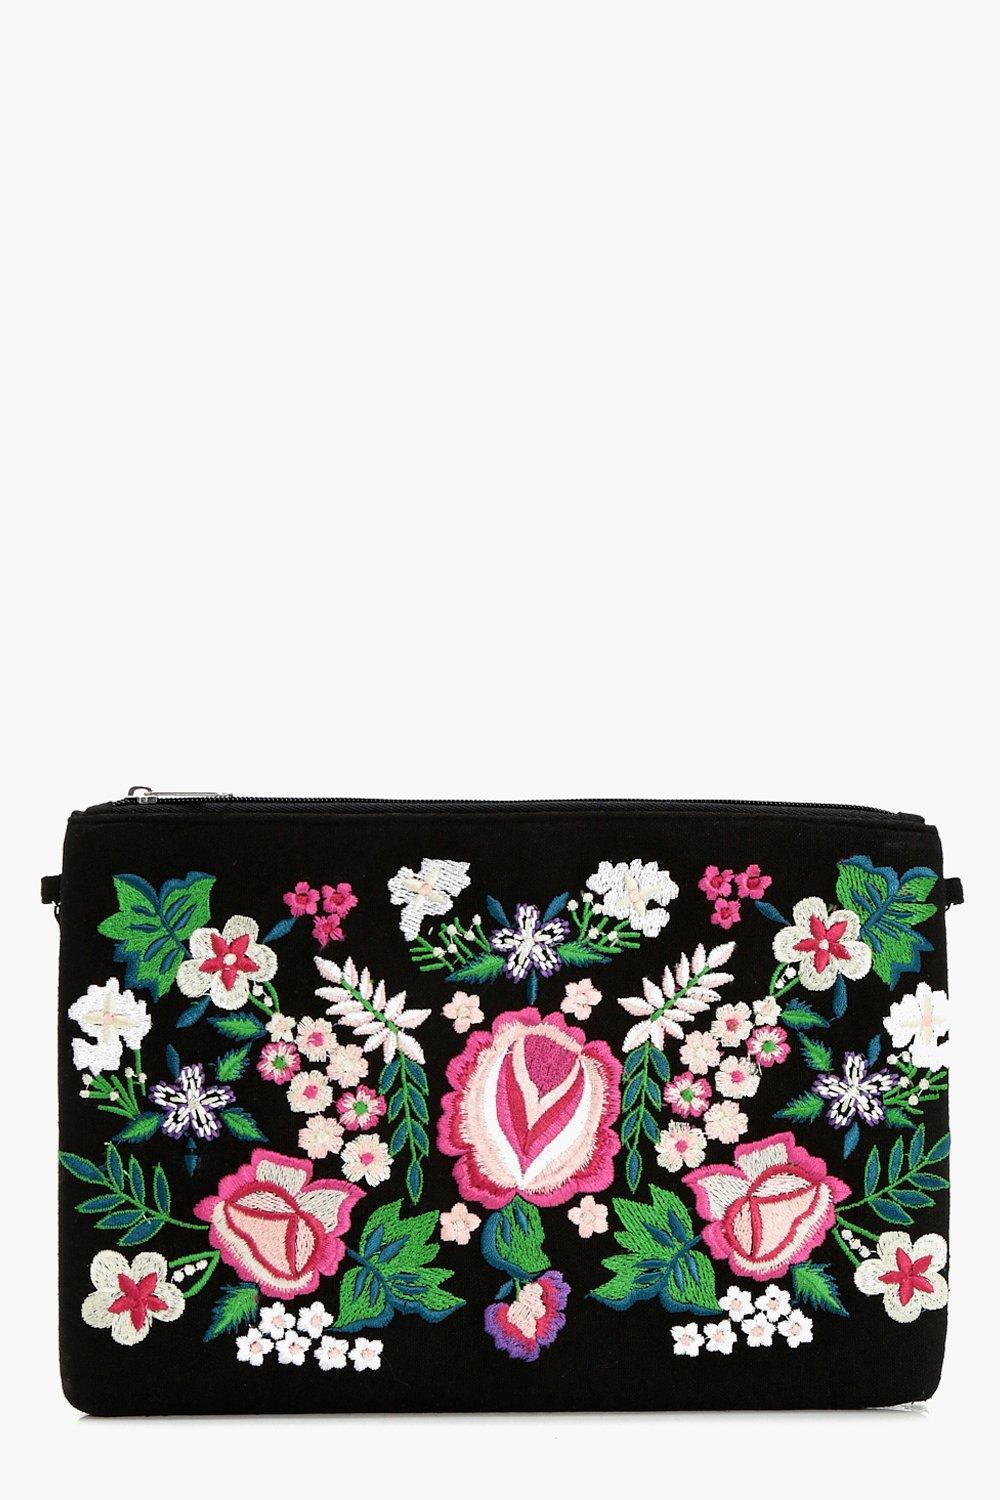 fcdeb80f077 Boohoo Ava Embroidered Clutch Bag in Black - Lyst